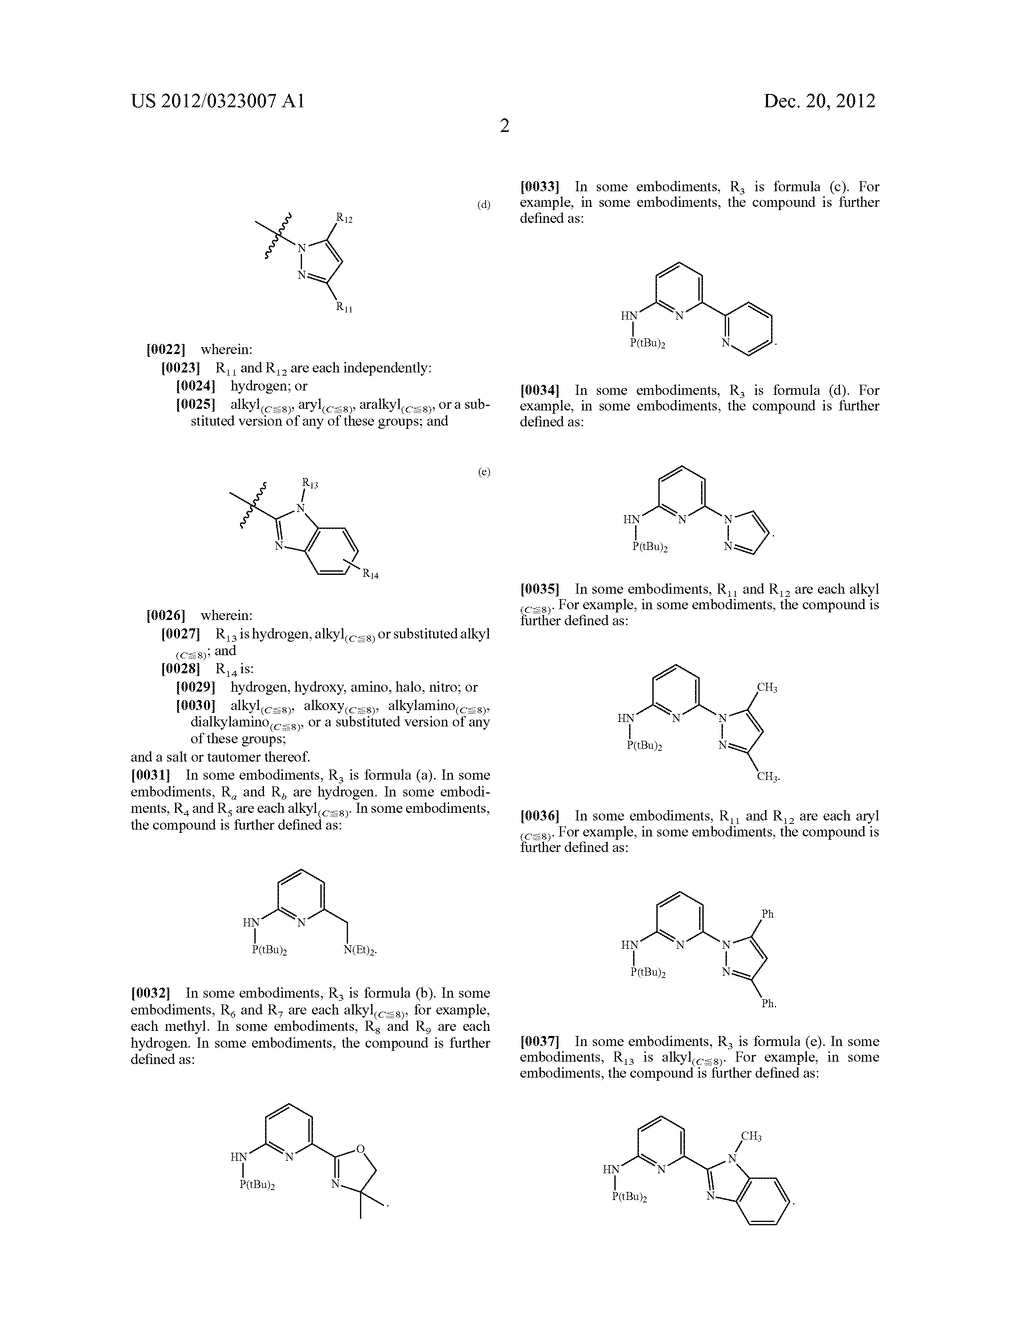 PHOSPHO-AMINO PINCER-TYPE LIGANDS AND CATALYTIC METAL COMPLEXES THEREOF - diagram, schematic, and image 10